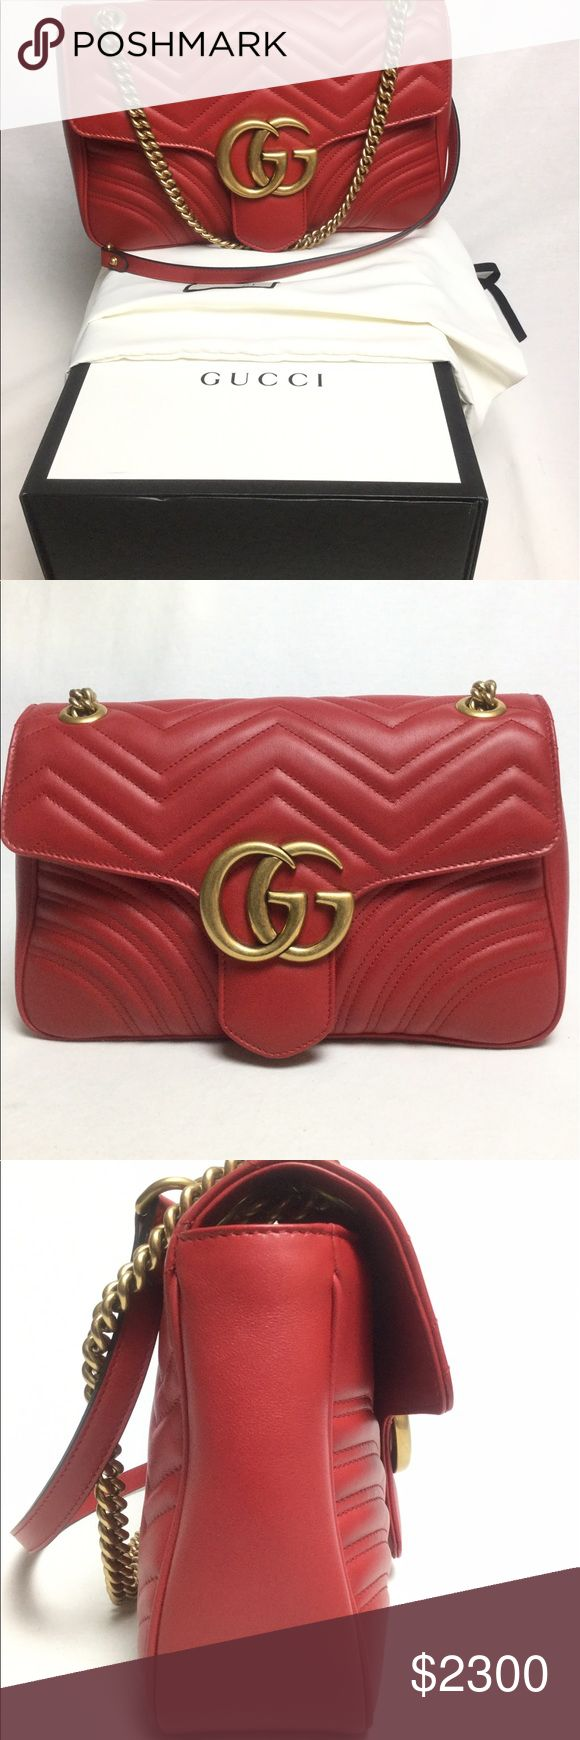 """GUCCI GG MARMONT MATELASSE SHOULDER BAG IN STORES NOW.   Current retail $2300.  Purchased a month ago and paid almost $2500 with tax.  In EXCELLENT Condition - LIKE NEW. This medium GG Marmont chain shoulder bag has a softly structured shape and an oversized flap closure with Double G hardware. Shoulder strap with 22"""" drop or can be worn as a top handle with 12"""" drop  Medium size: 12""""W x 7.5""""H x 3""""D  Include Dust bag, care card, copy of purchase receipt, box and Gucci paper bag.  Price Firm…"""